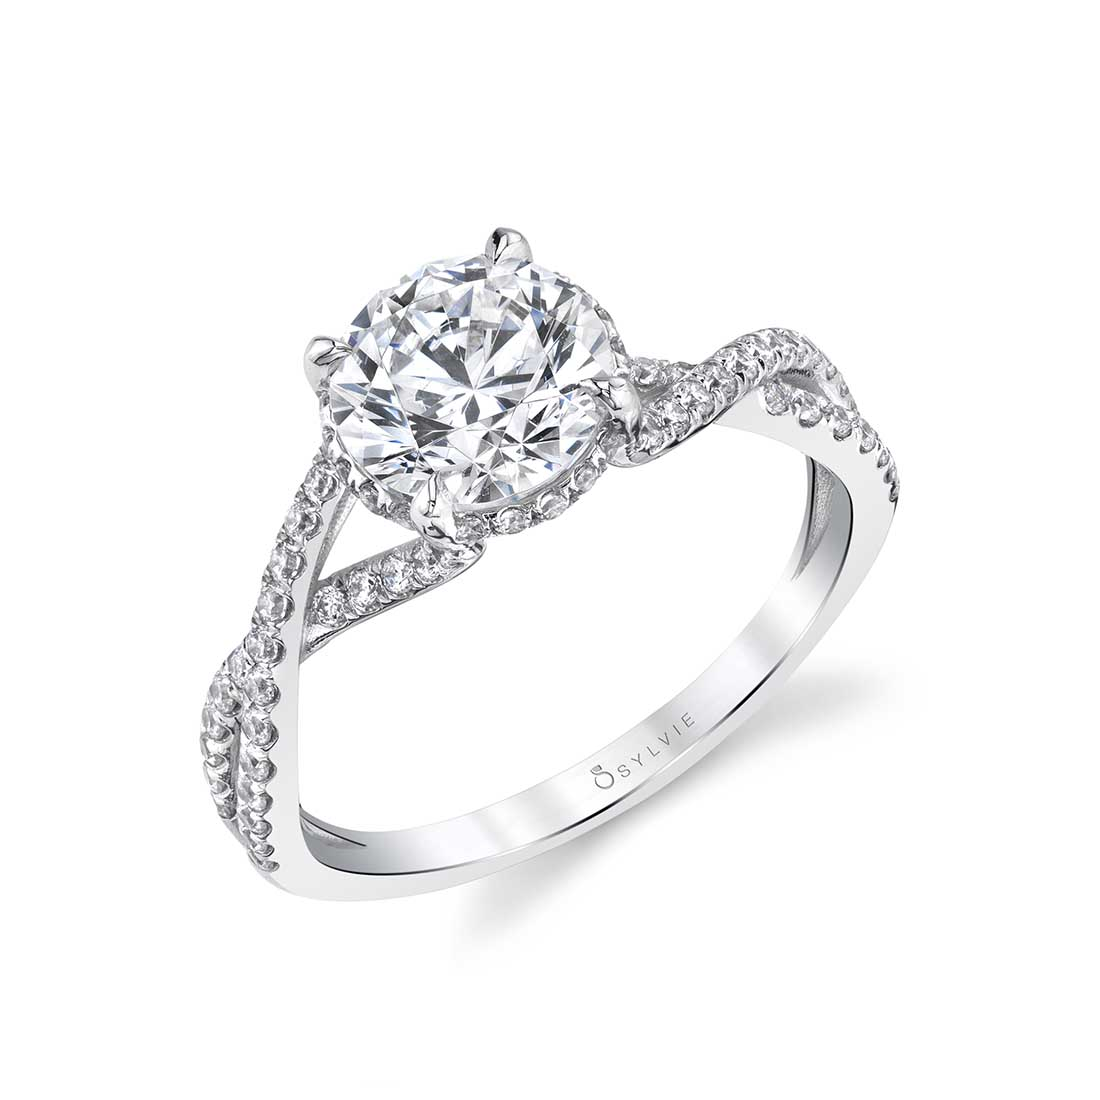 Twisted Engagement Ring with a hidden halo shown in white gold